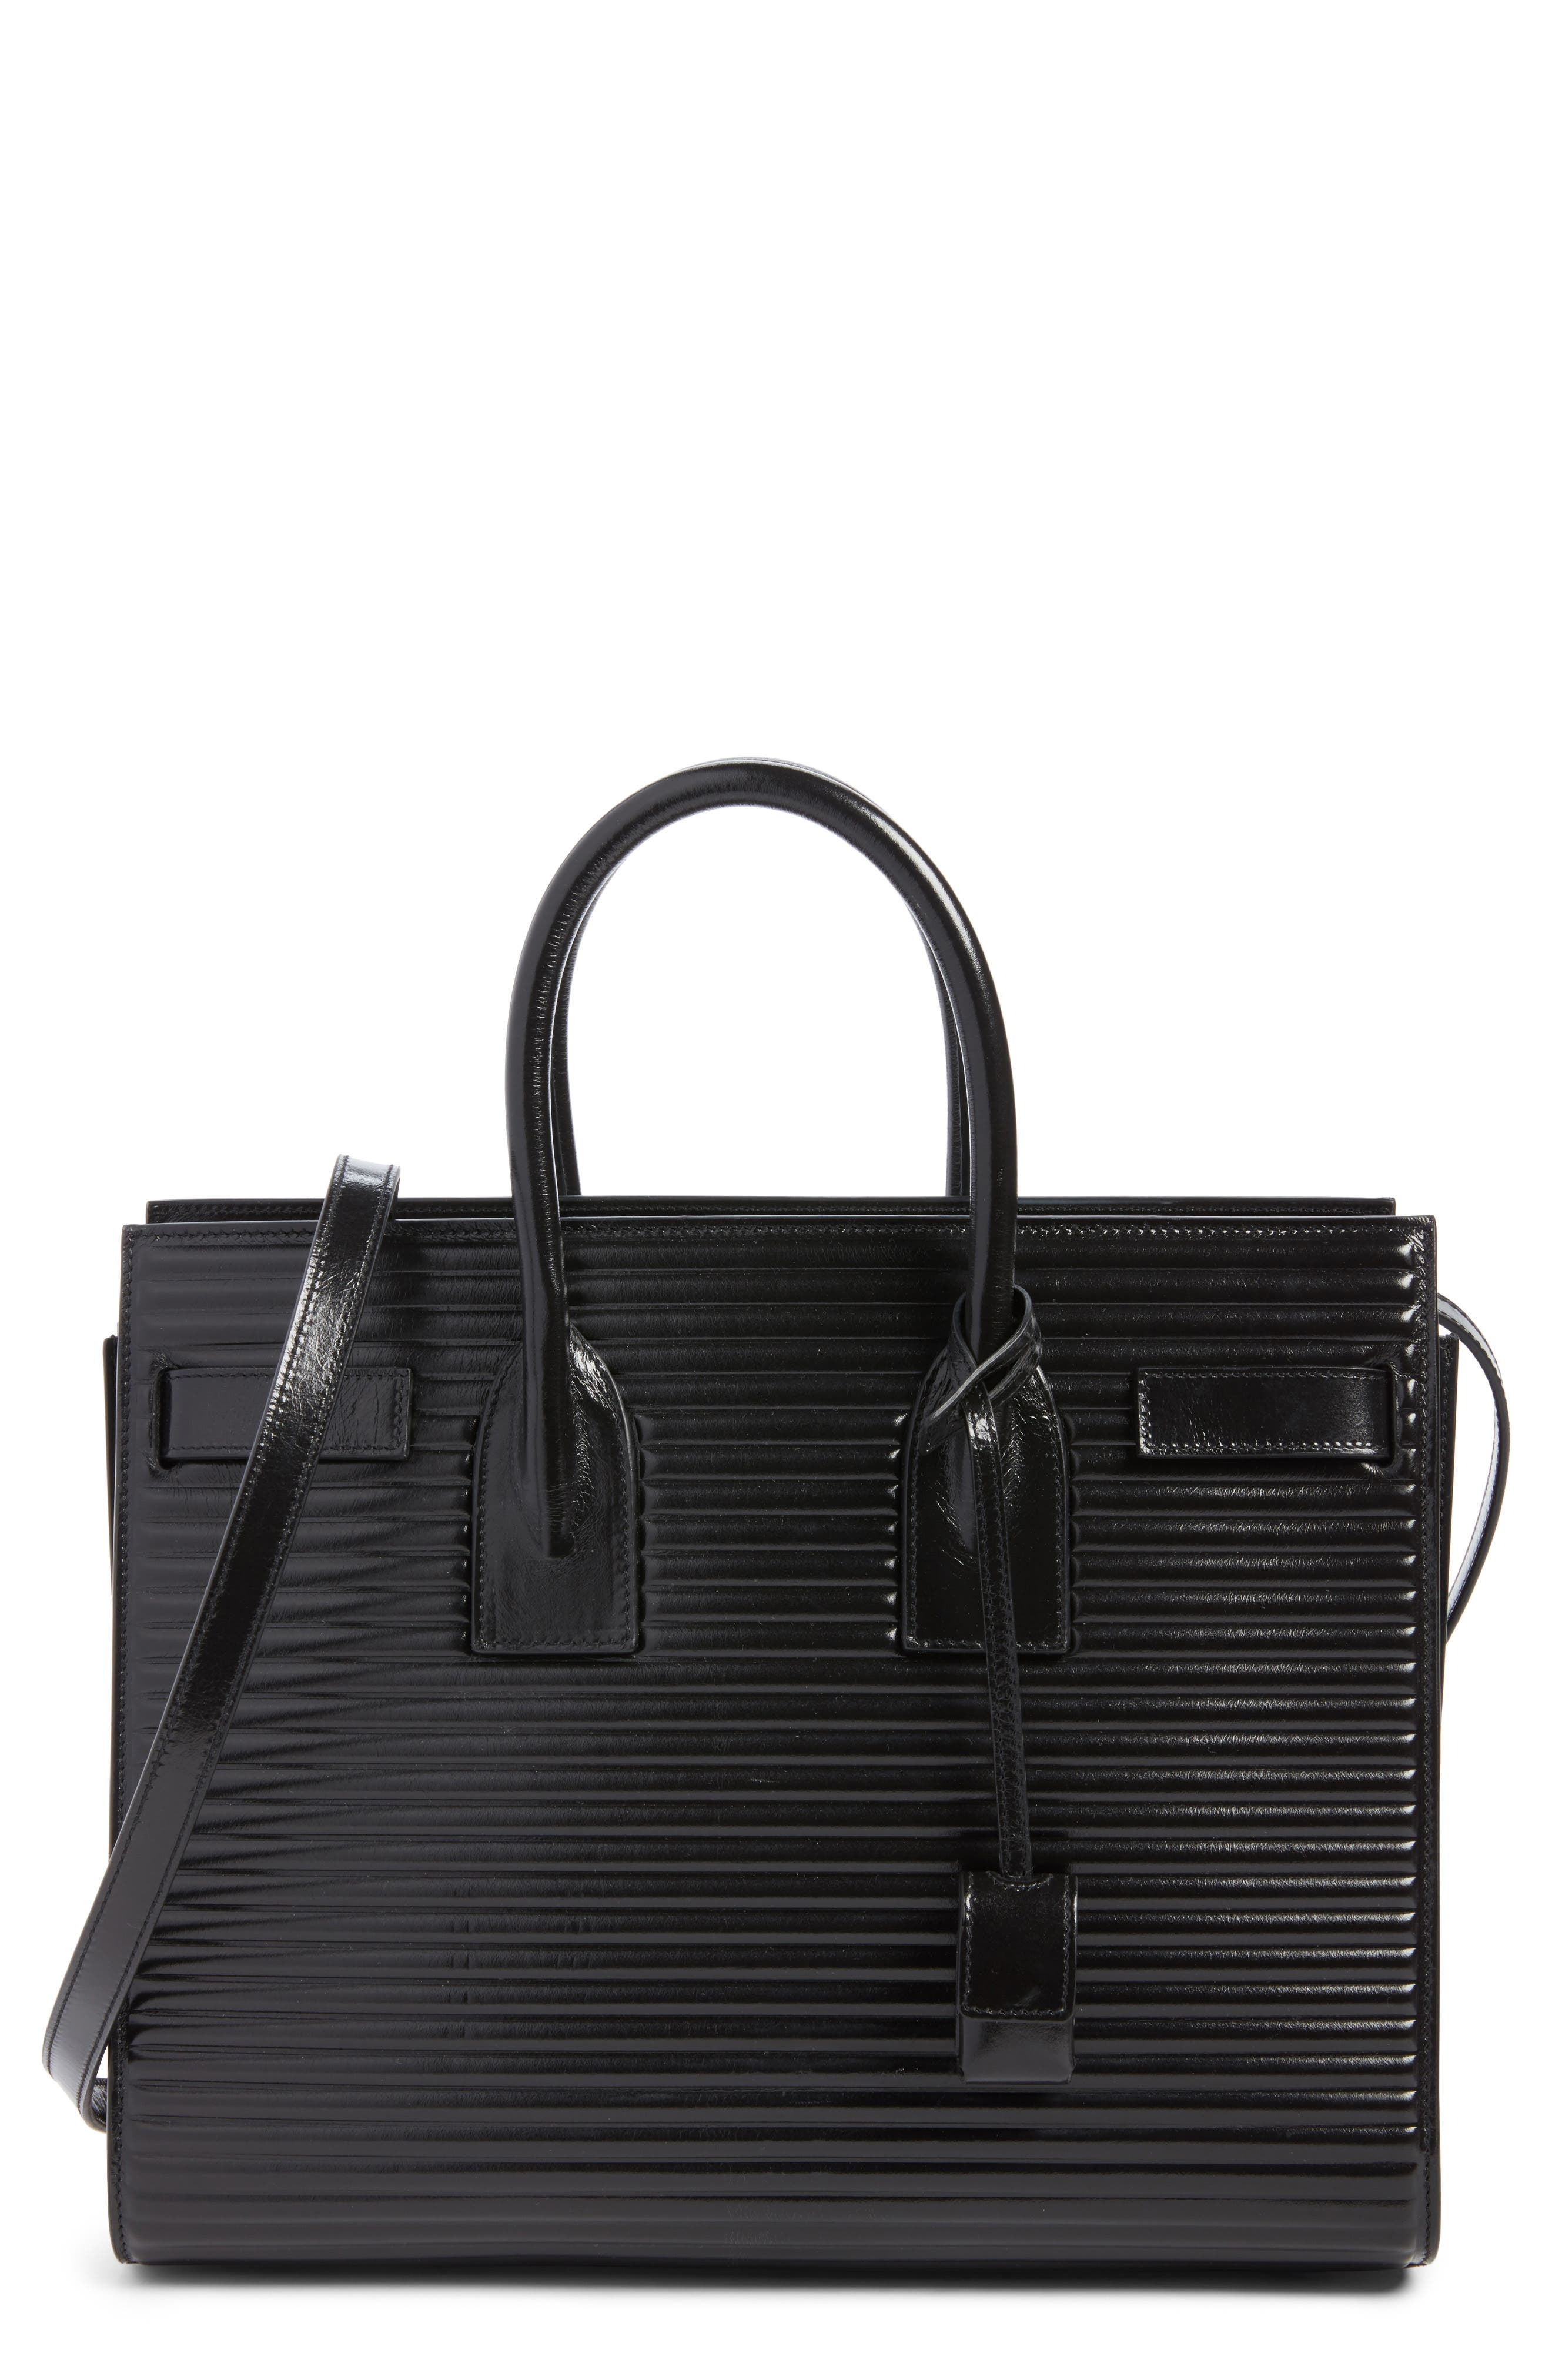 Main Image - Saint Laurent Small Sac du Jour Matelassé Leather Tote